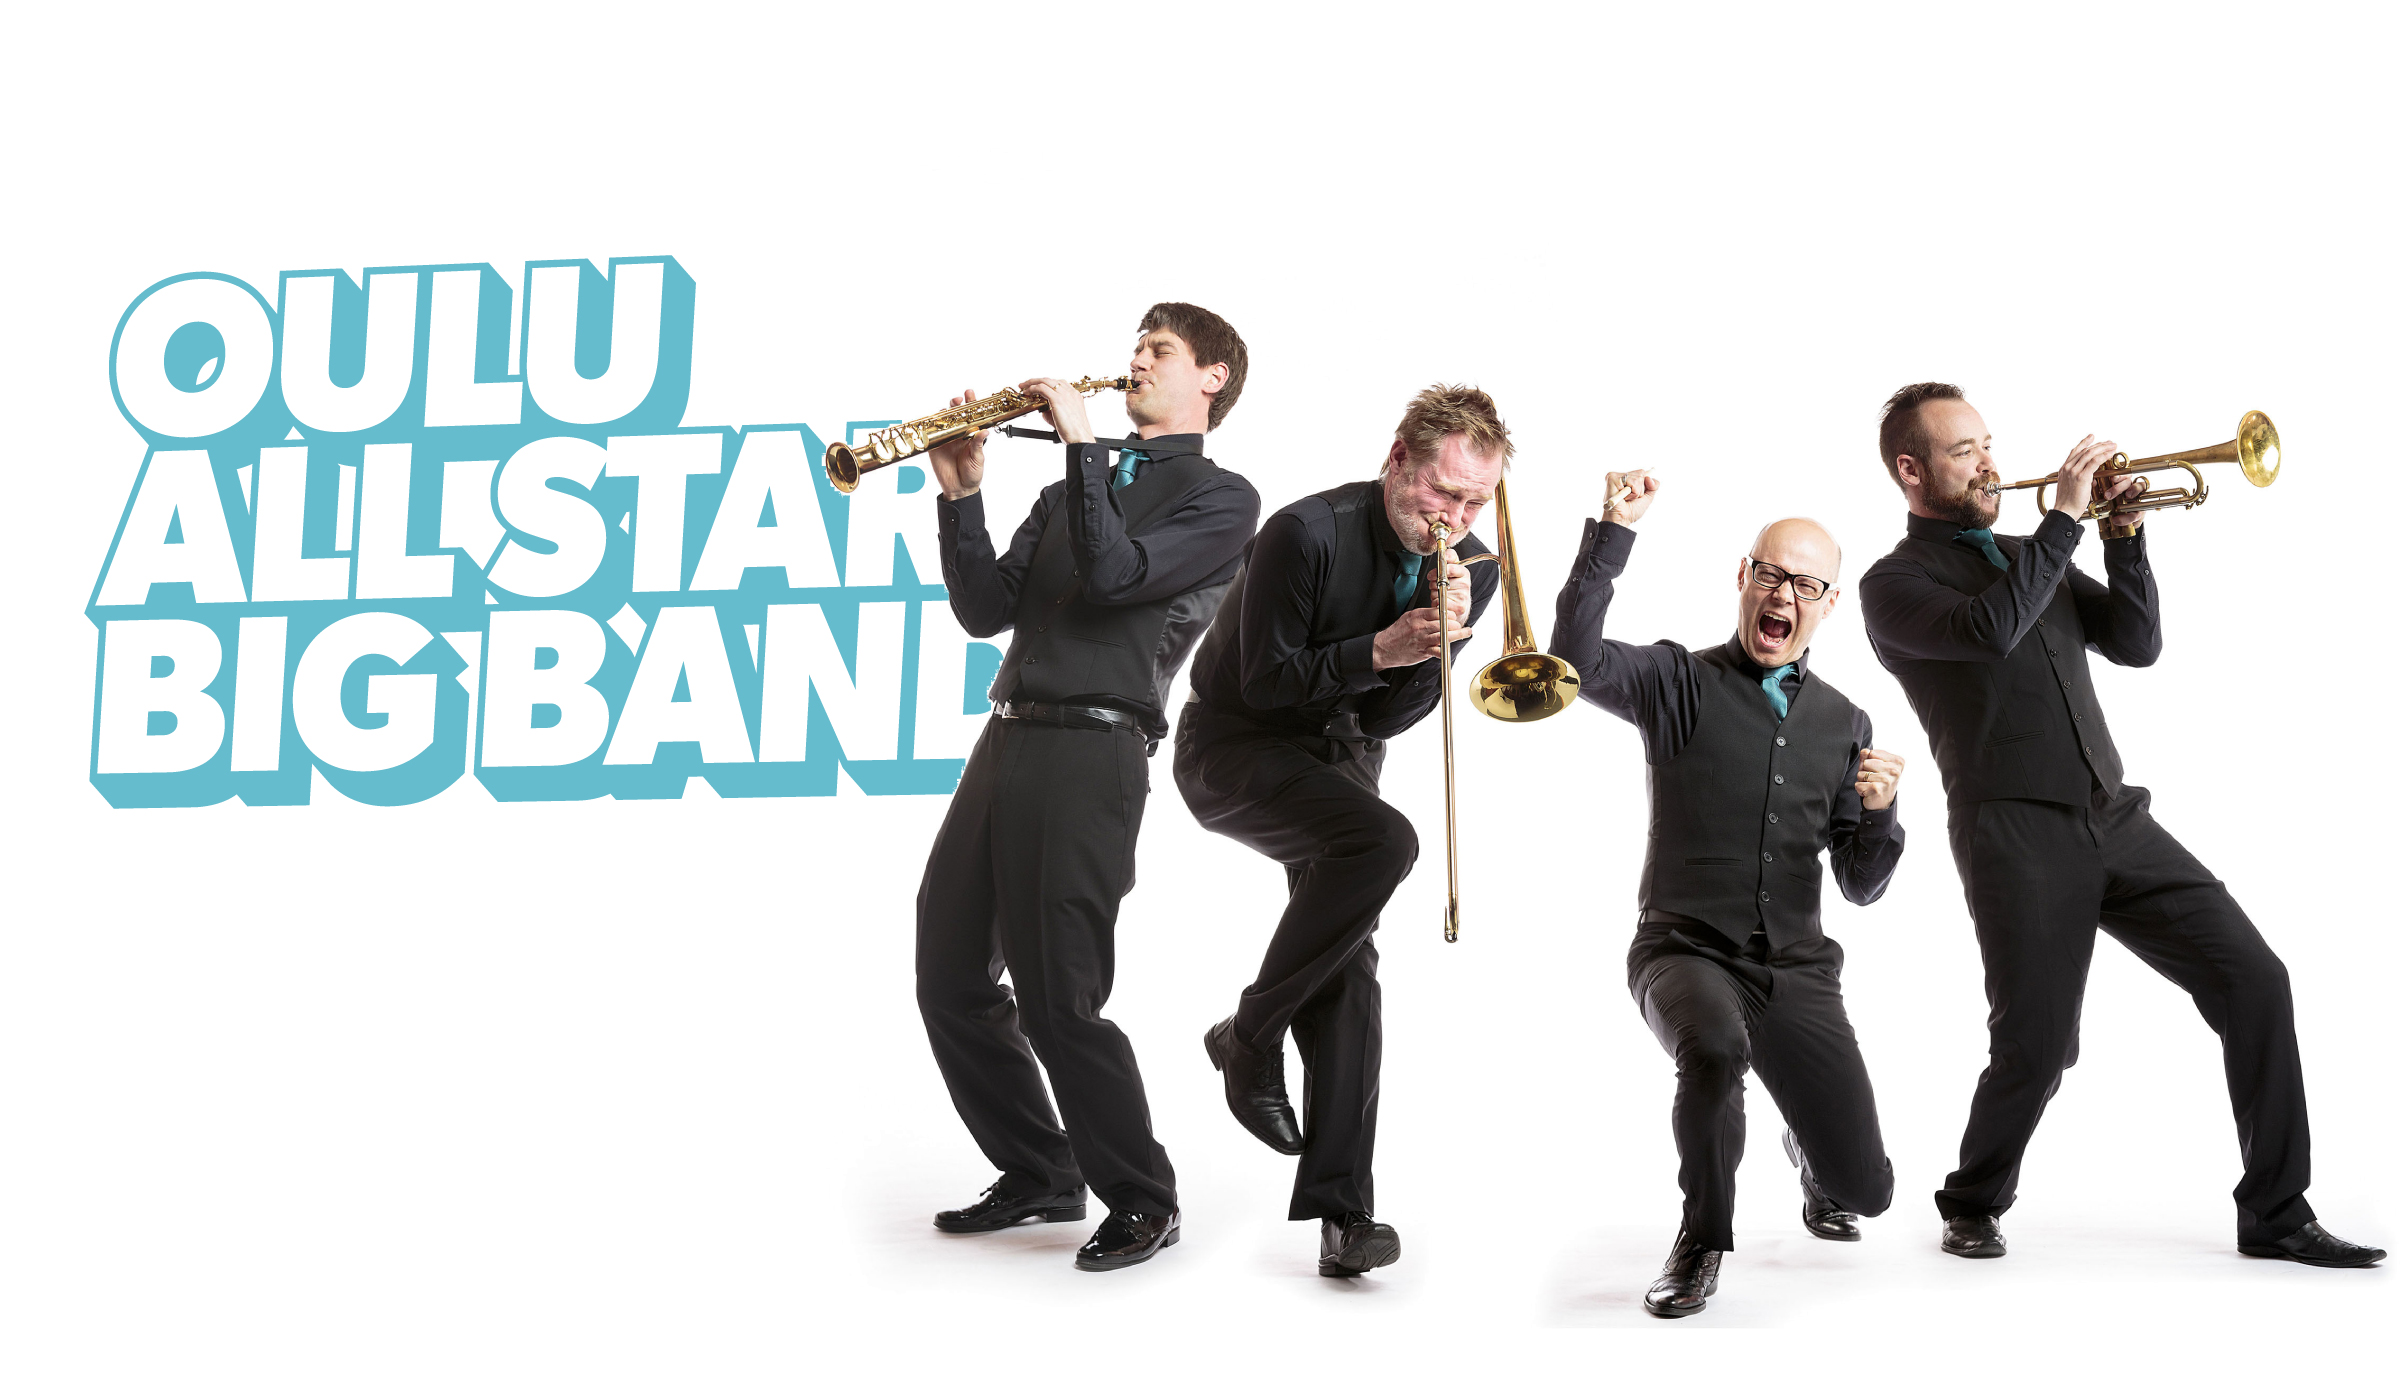 Oulu All Star Big Band